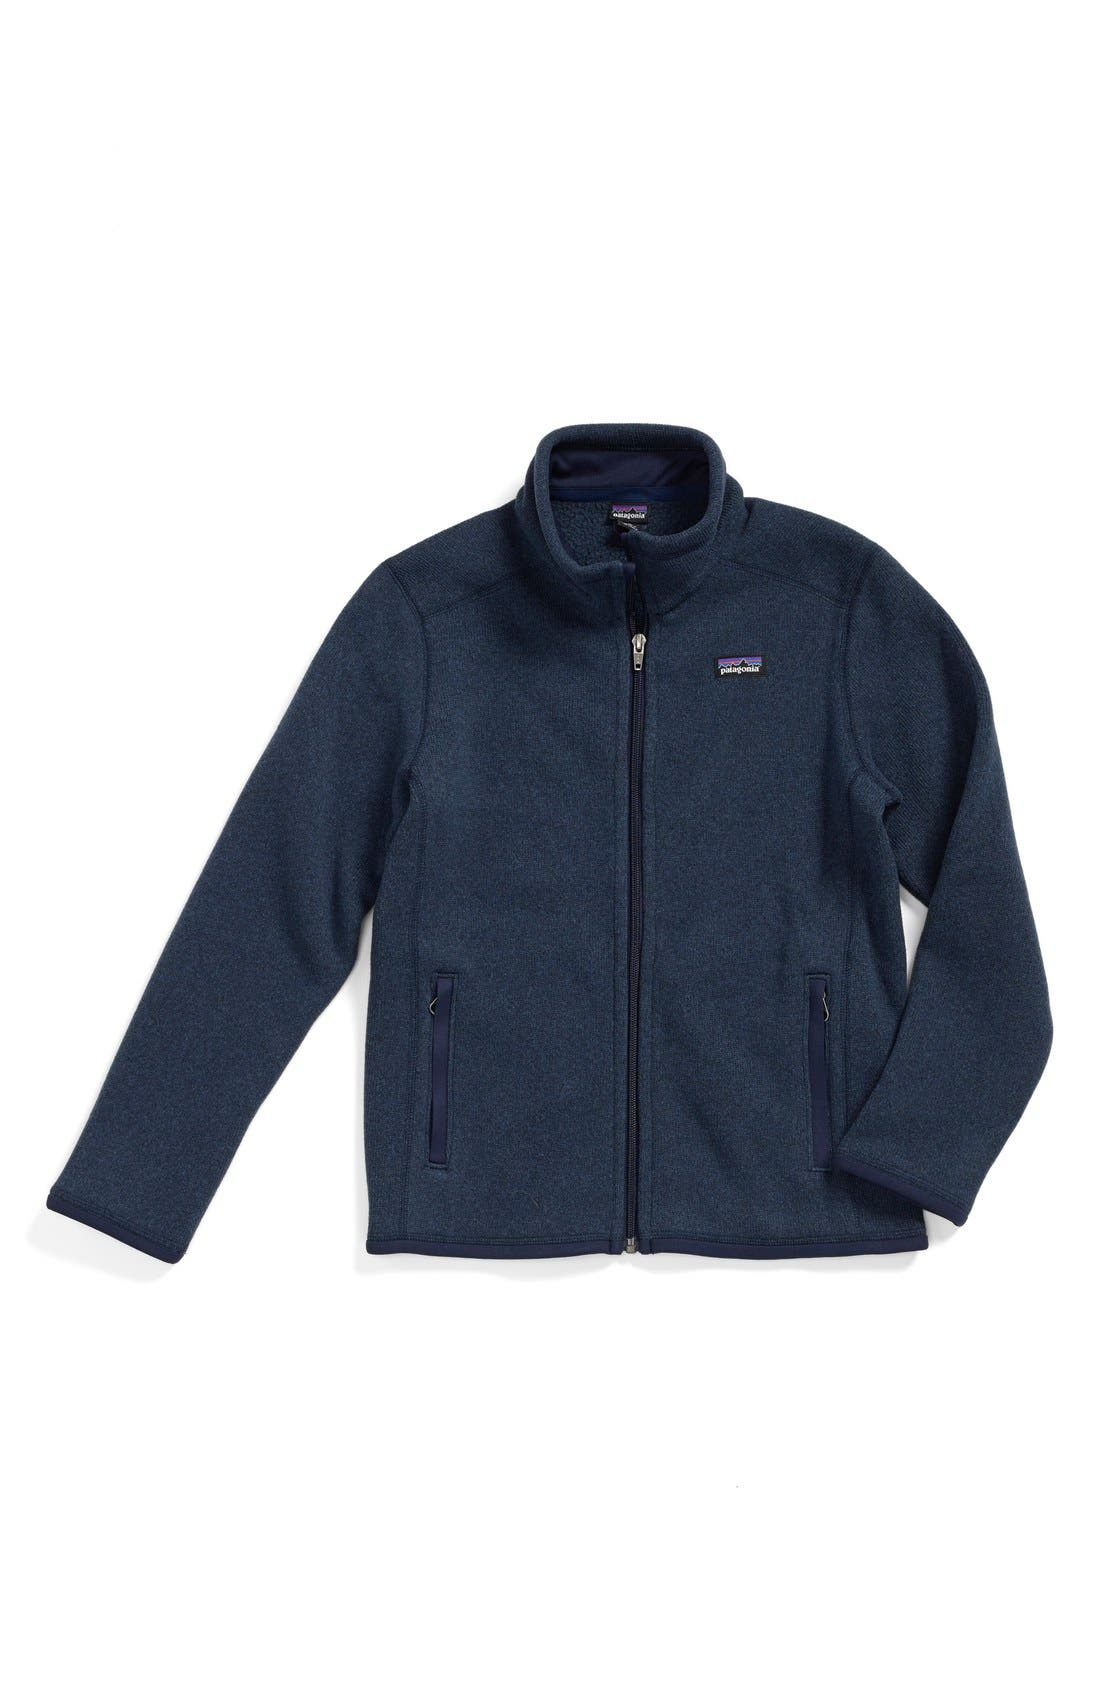 Better Sweater Jacket,                             Main thumbnail 1, color,                             CLASSIC NAVY